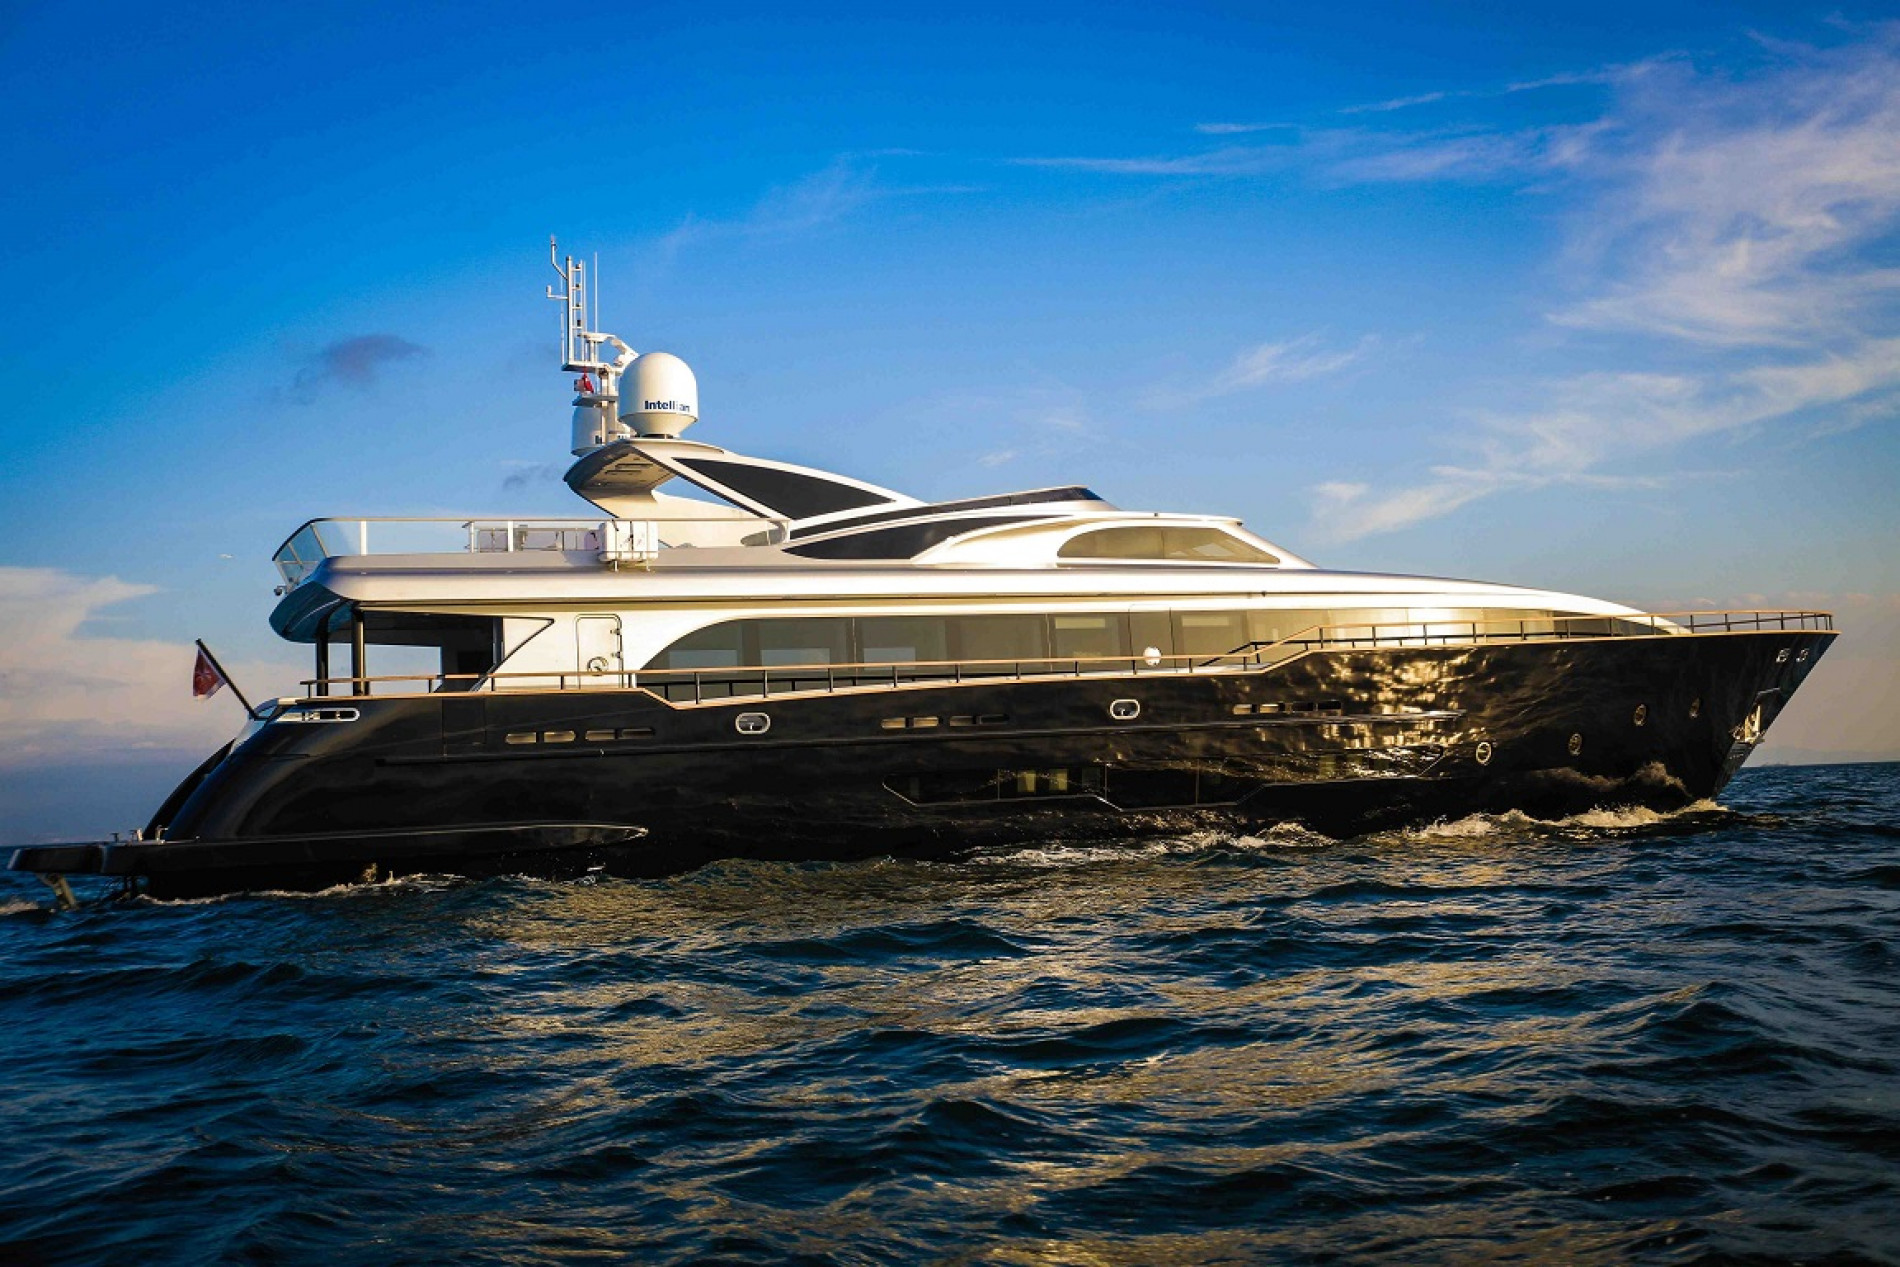 Яхта H Luxury Yachting 124 - фото 1 из 18